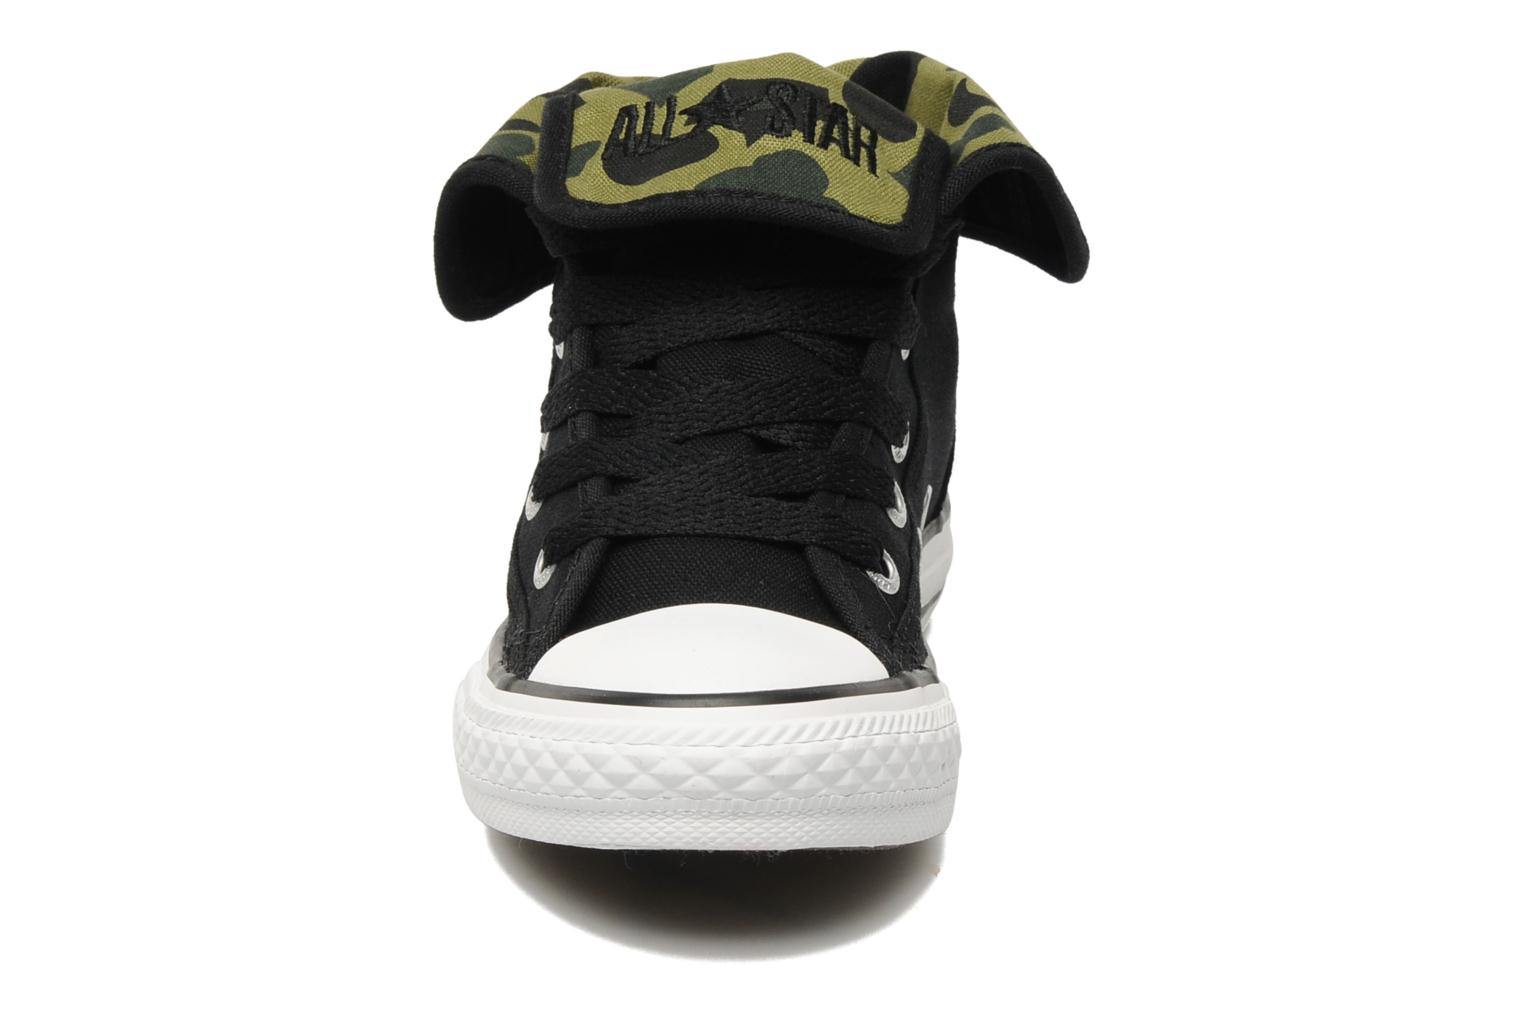 Chuck Taylor All Star Super Canvas Camo Hi K Noir-Camo vert